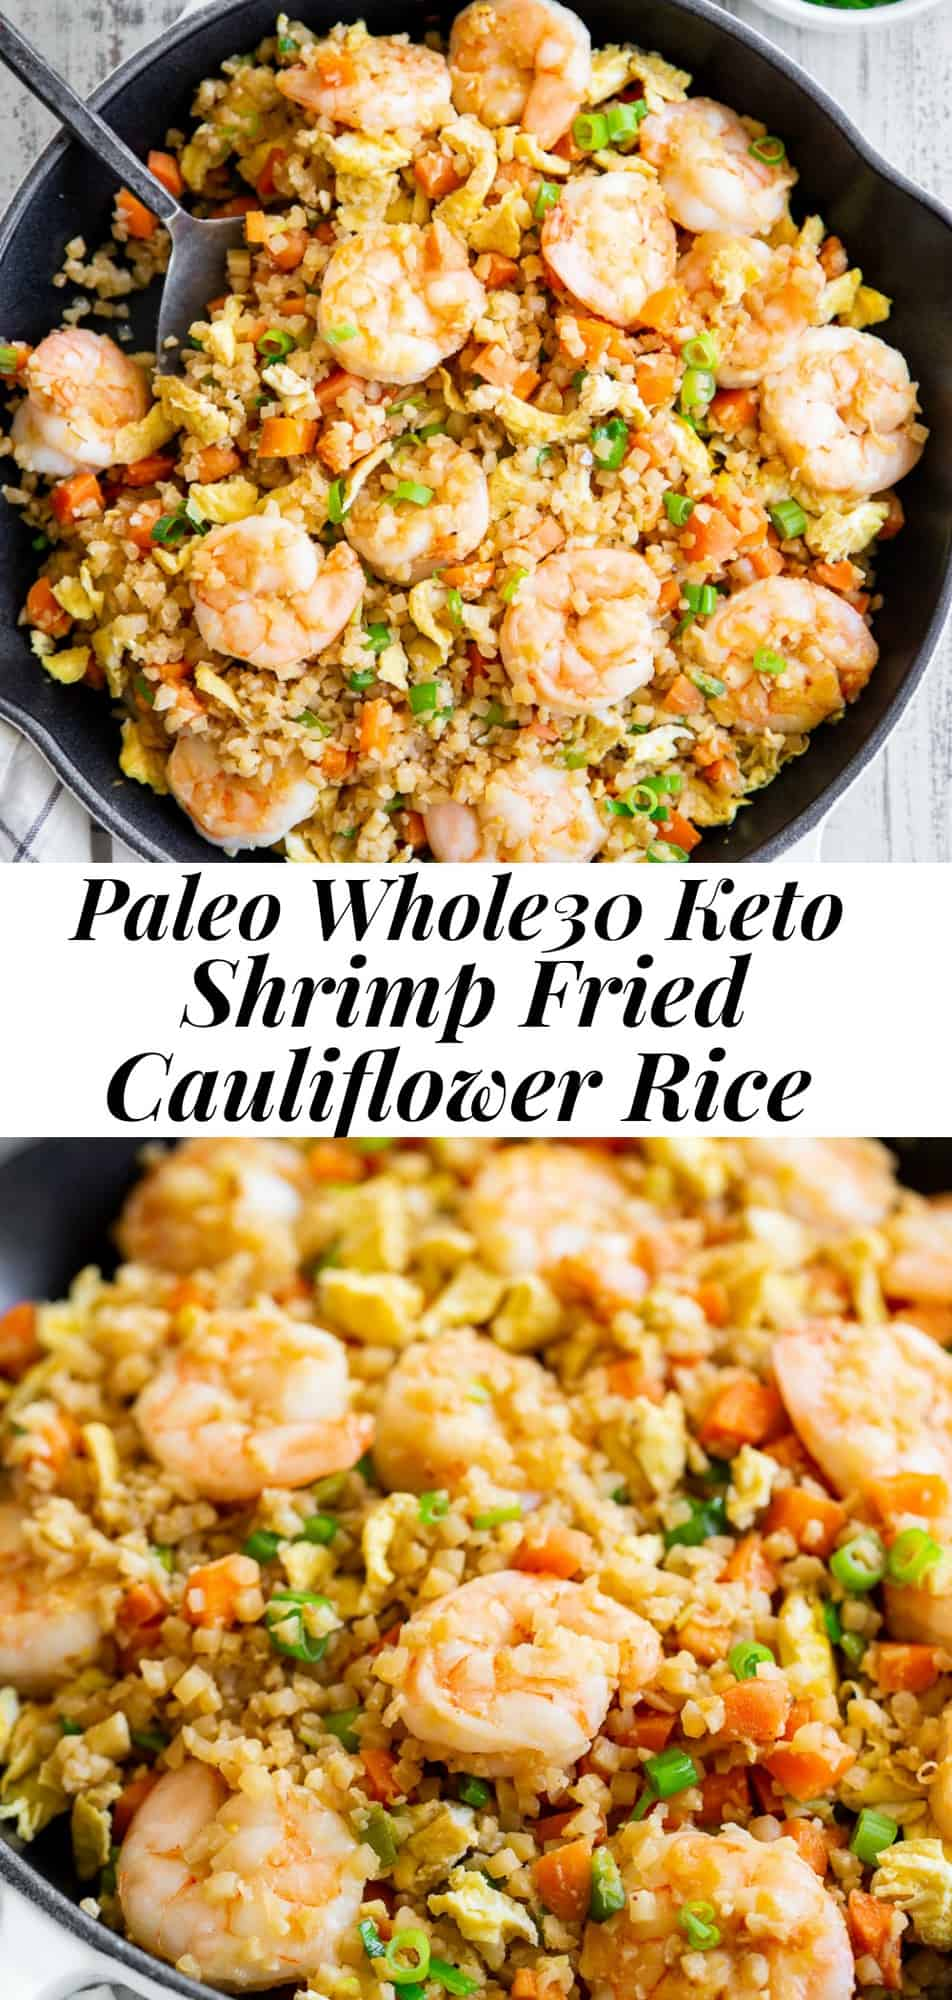 This shrimp fried cauliflower rice tastes just like the real thing (maybe better!) but it's healthier and easy to make at home!  Loaded with flavor, protein, veggies and healthy fats, it makes a great weeknight meal that everyone will love - even the picky kiddos!  Paleo, Whole30 compliant, and keto friendly. #keto #paleo #cleaneating #whole30